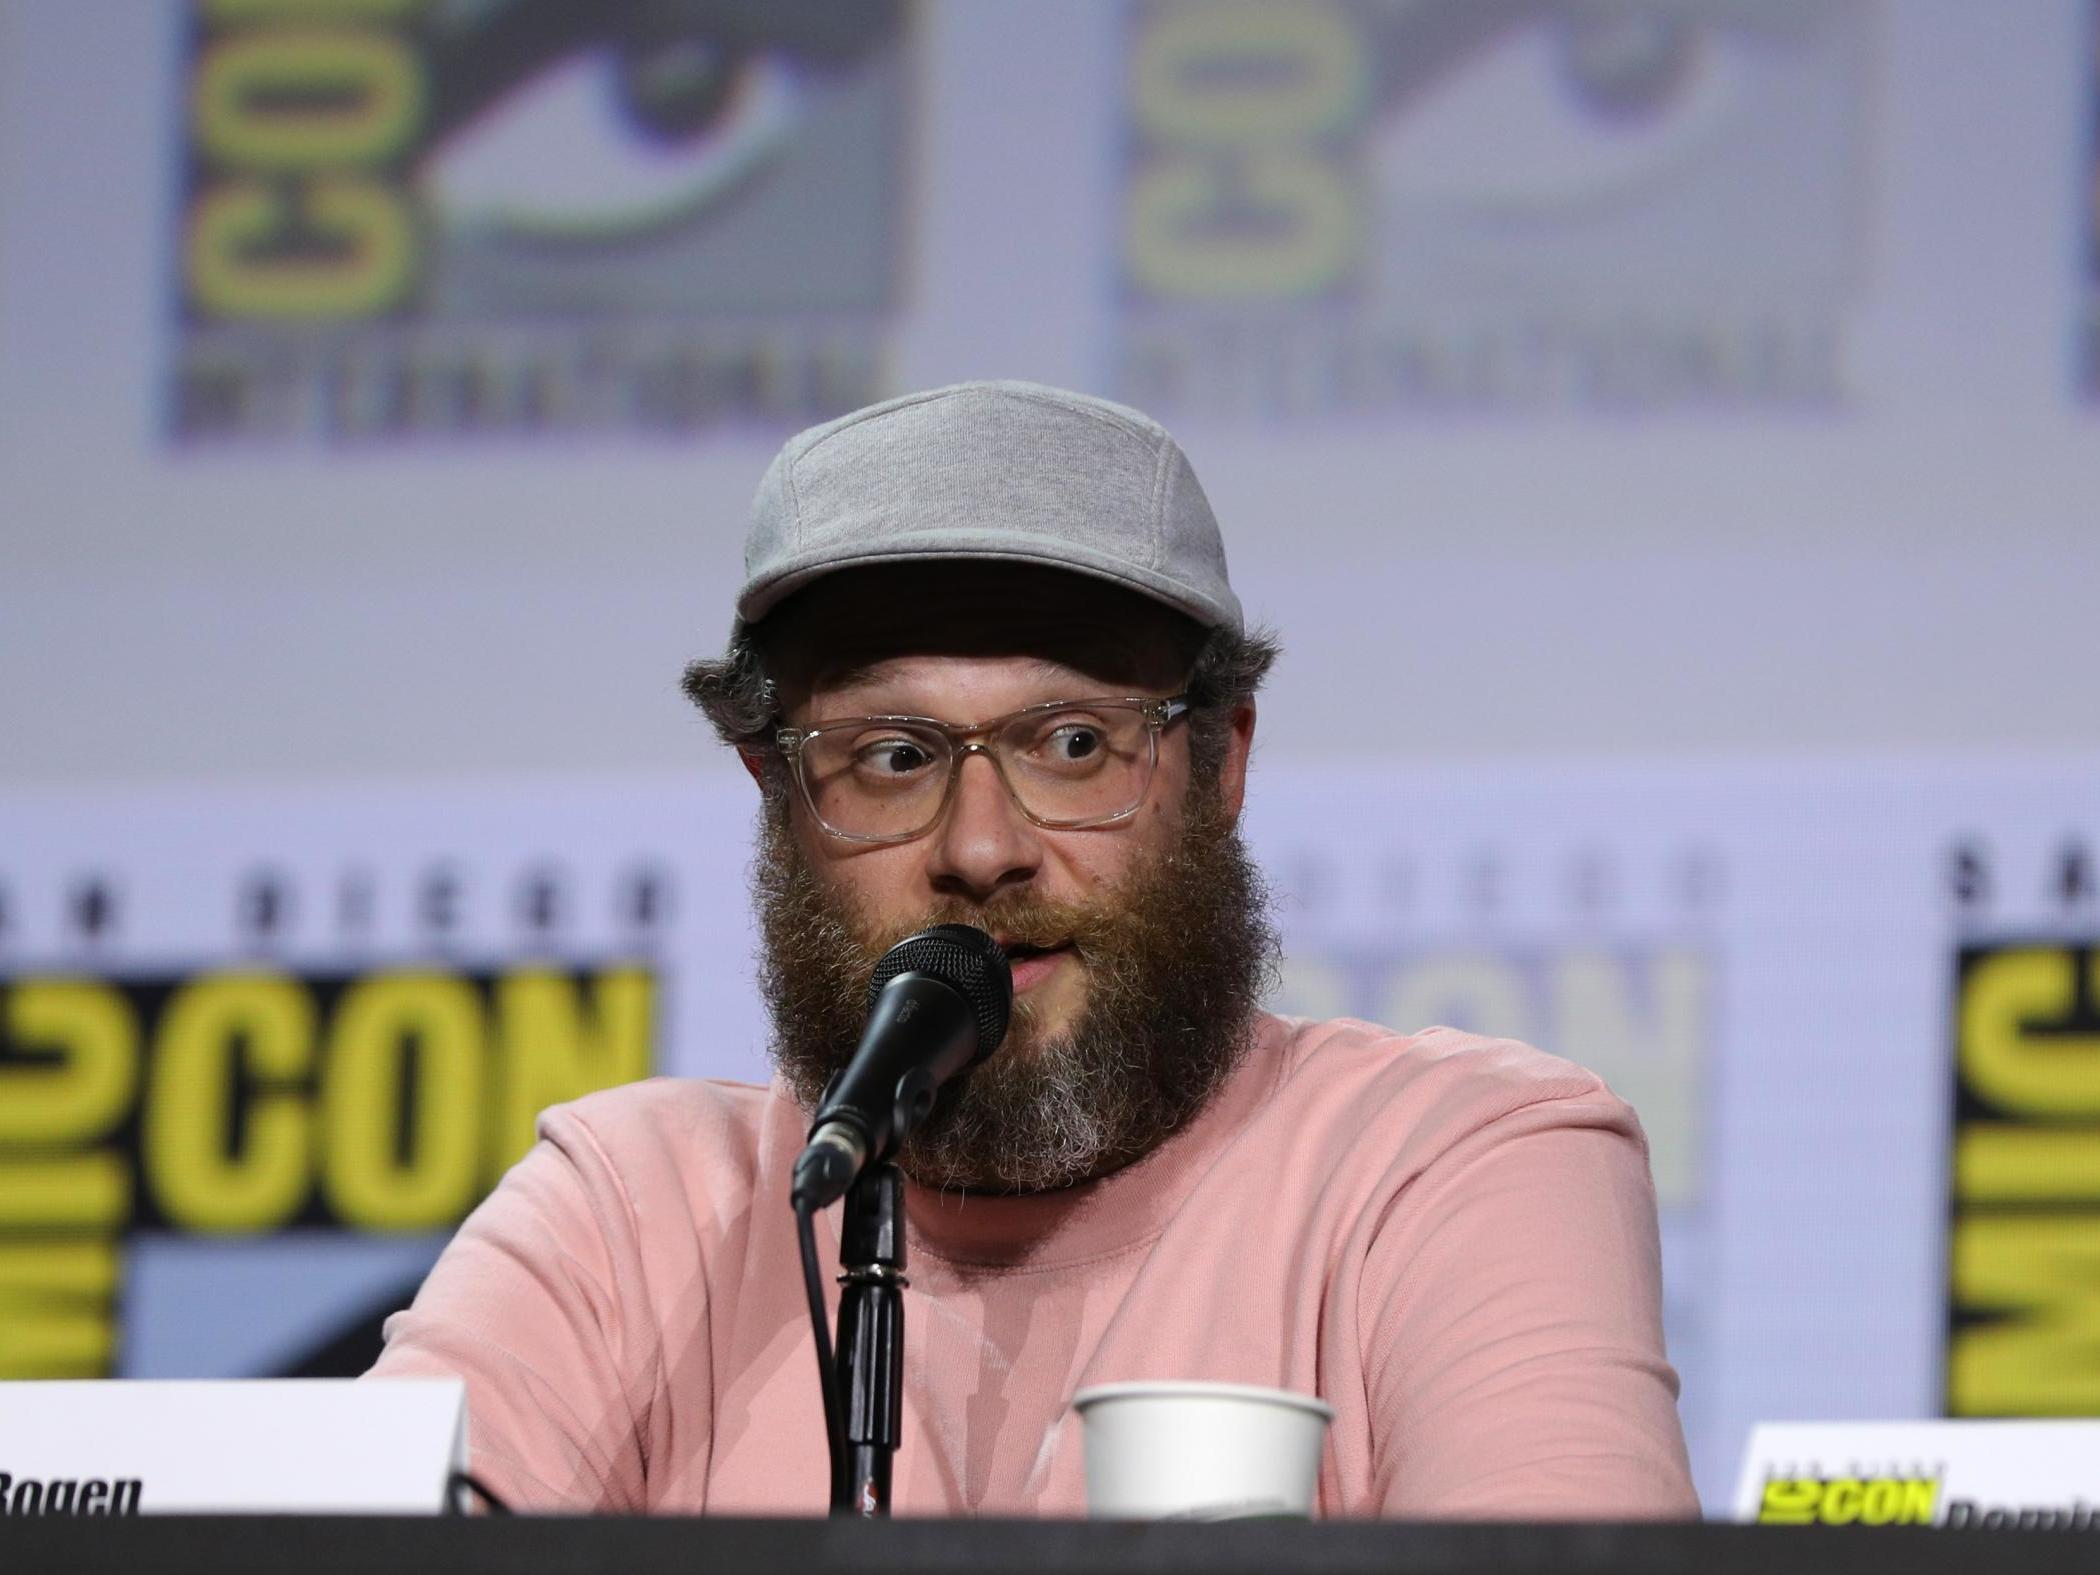 Seth Rogen makes digs at Game of Thrones season 8 finale during Preacher panel